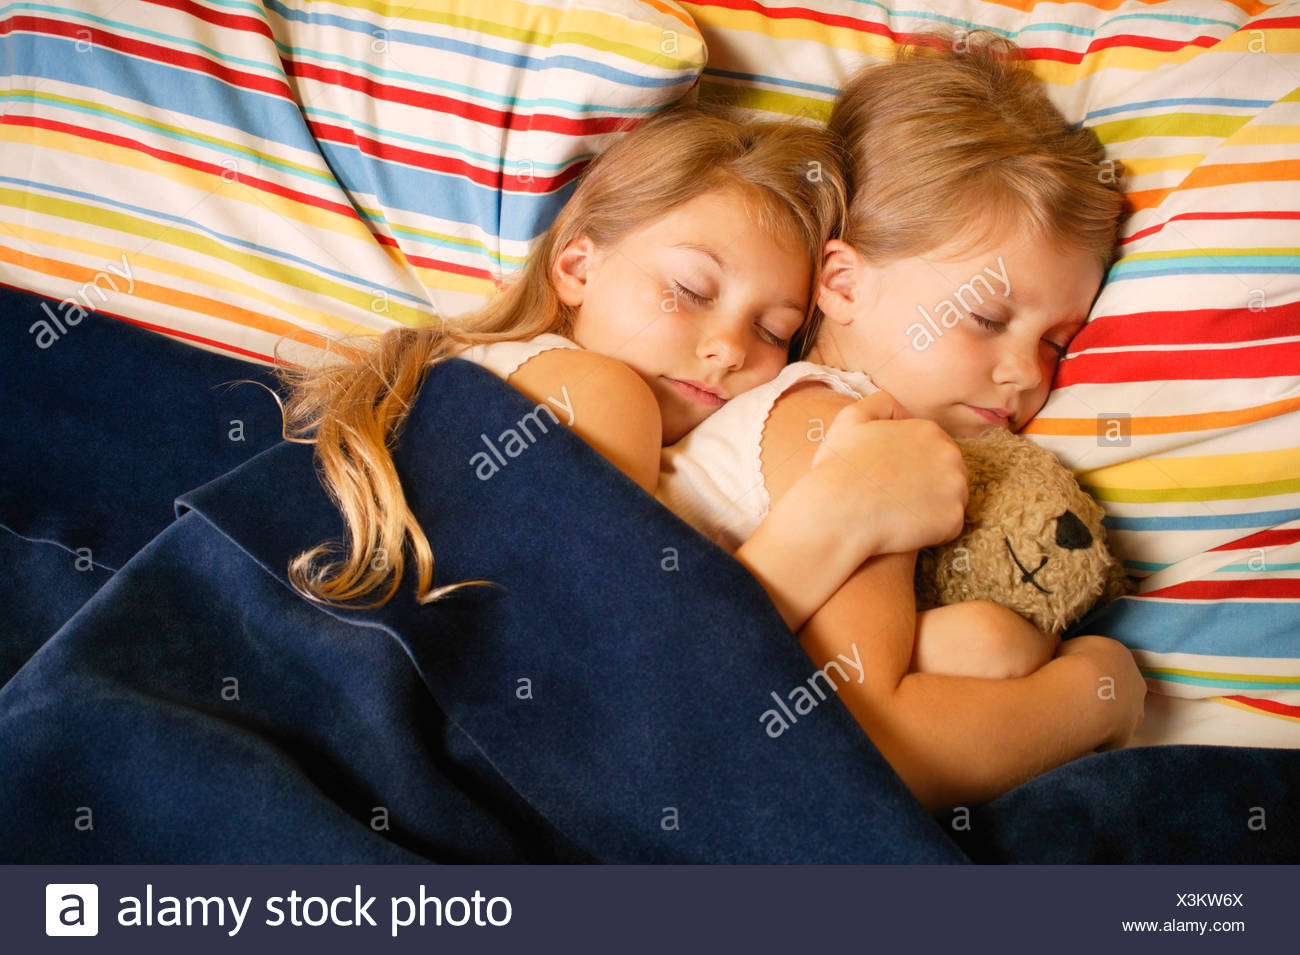 Sisters snuggle while taking a nap. - Stock Image